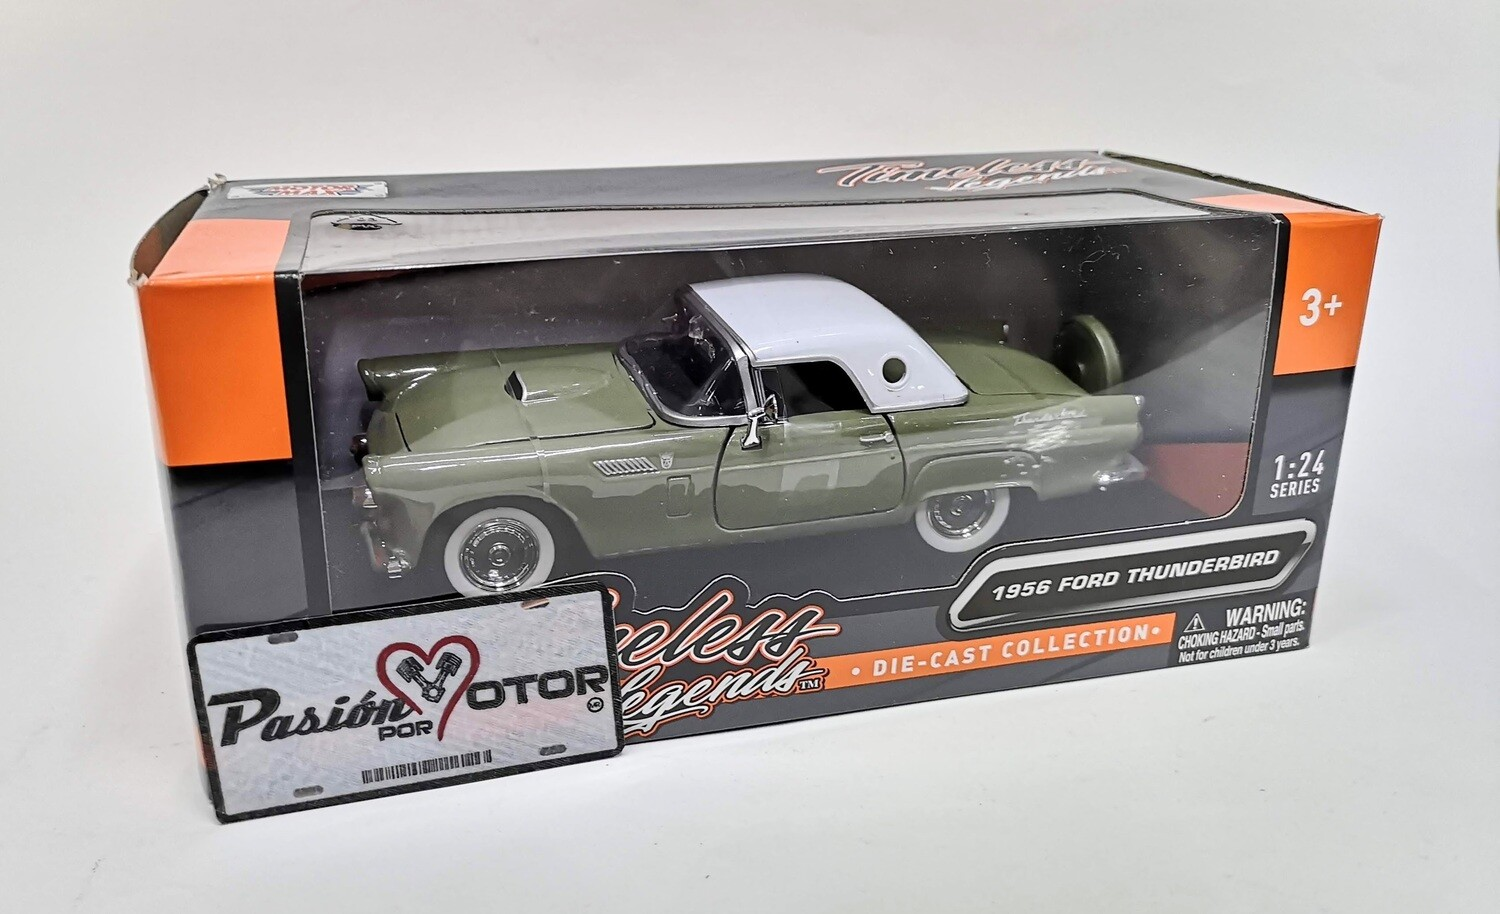 Motor Max 1:24 Ford Thunderbird Coupe 1956 Verde Timeless Legends Con Caja